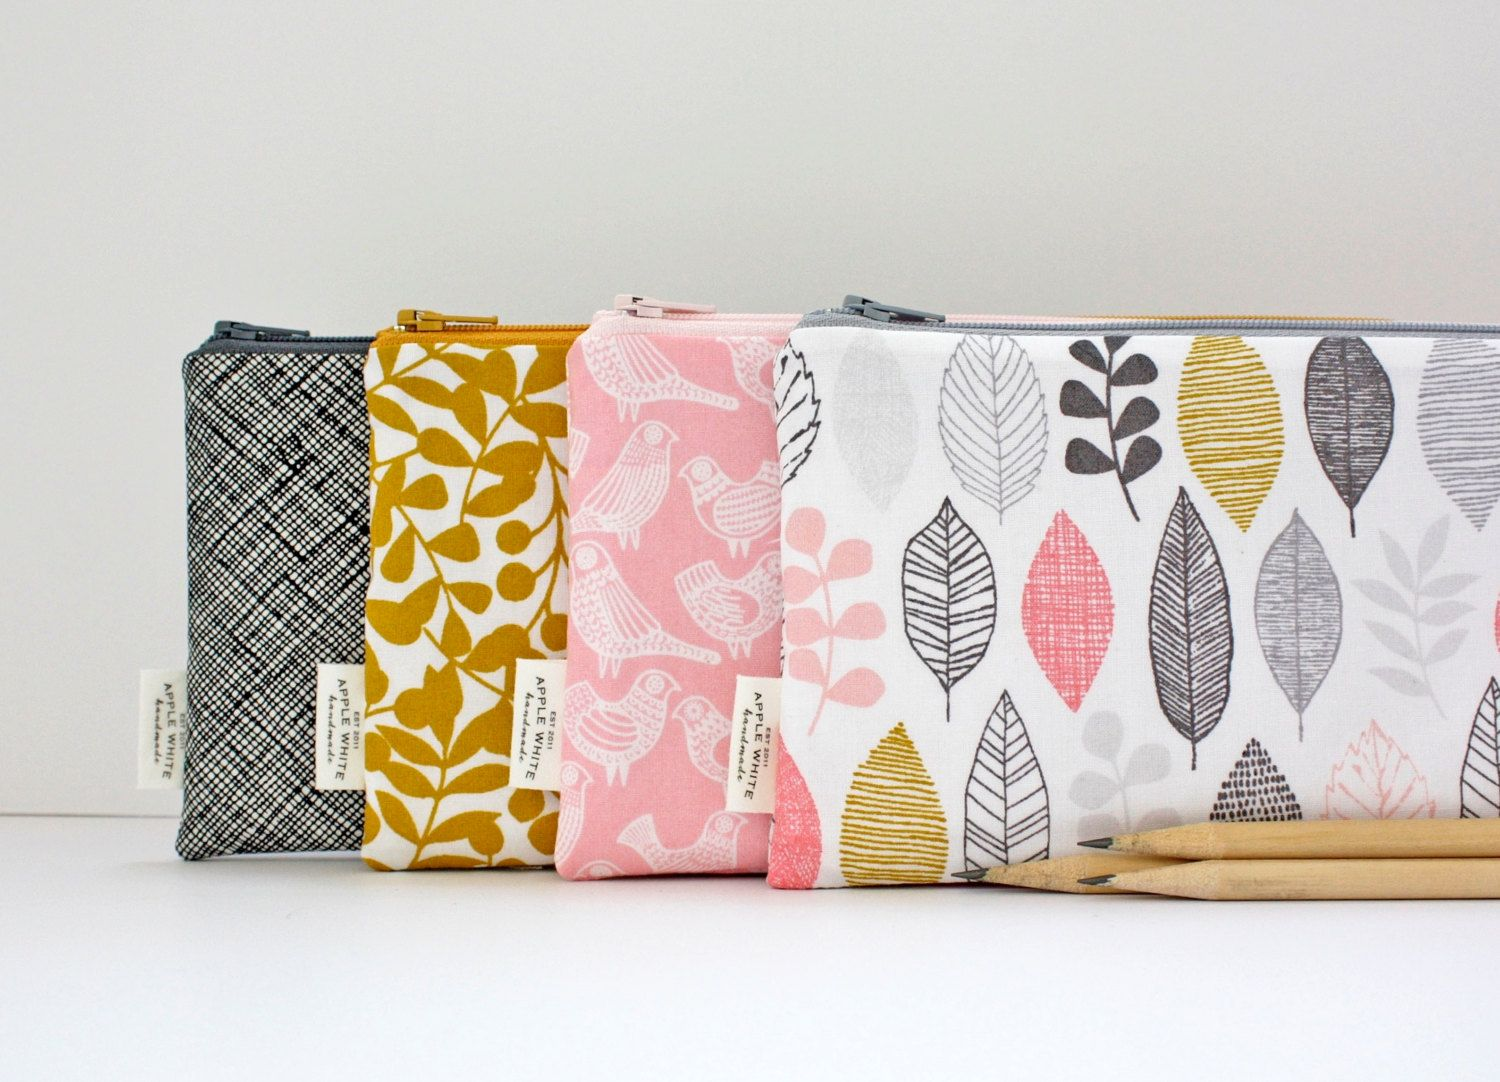 b6682333e Zipper Pouch, Modern Nature, Color, Leaves, Birds, Pencil Pouch, Pencil  Case, College, Kids, School Supplies, Teens, Women, Organize by AppleWhite  on Etsy